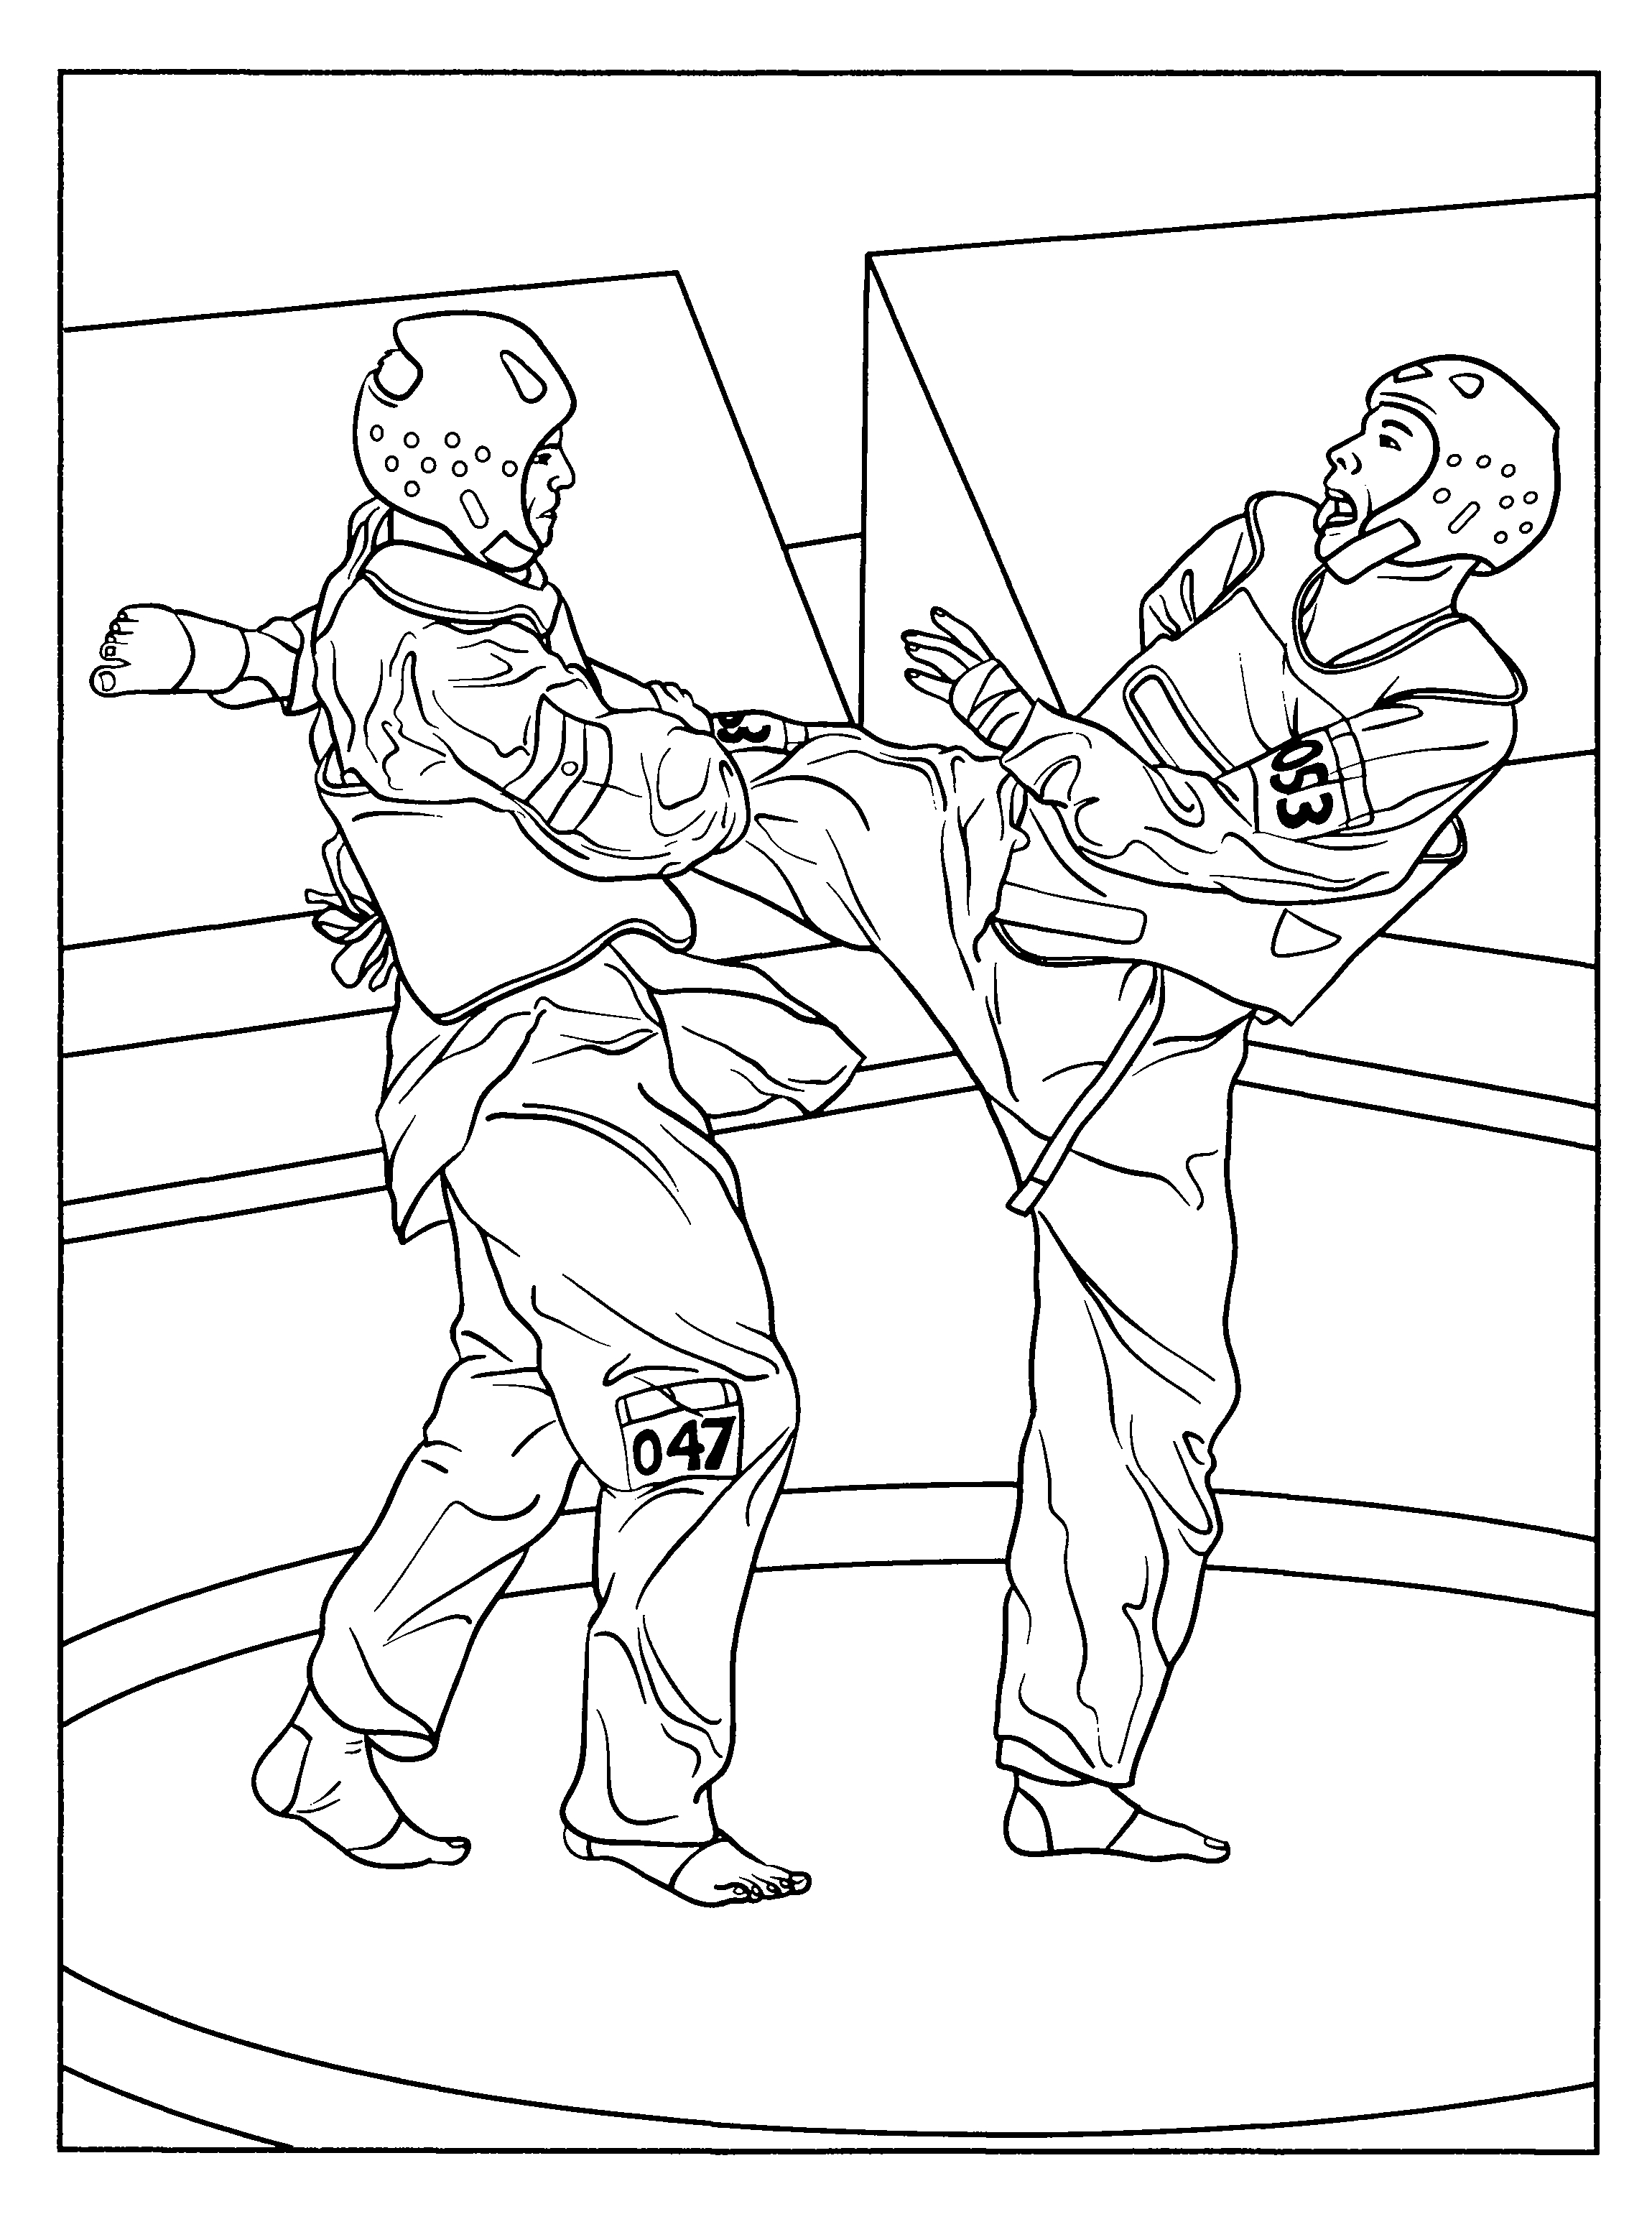 Karate Coloring Pages For Kids   Coloring Pages   Karate School - Free Printable Karate Coloring Pages